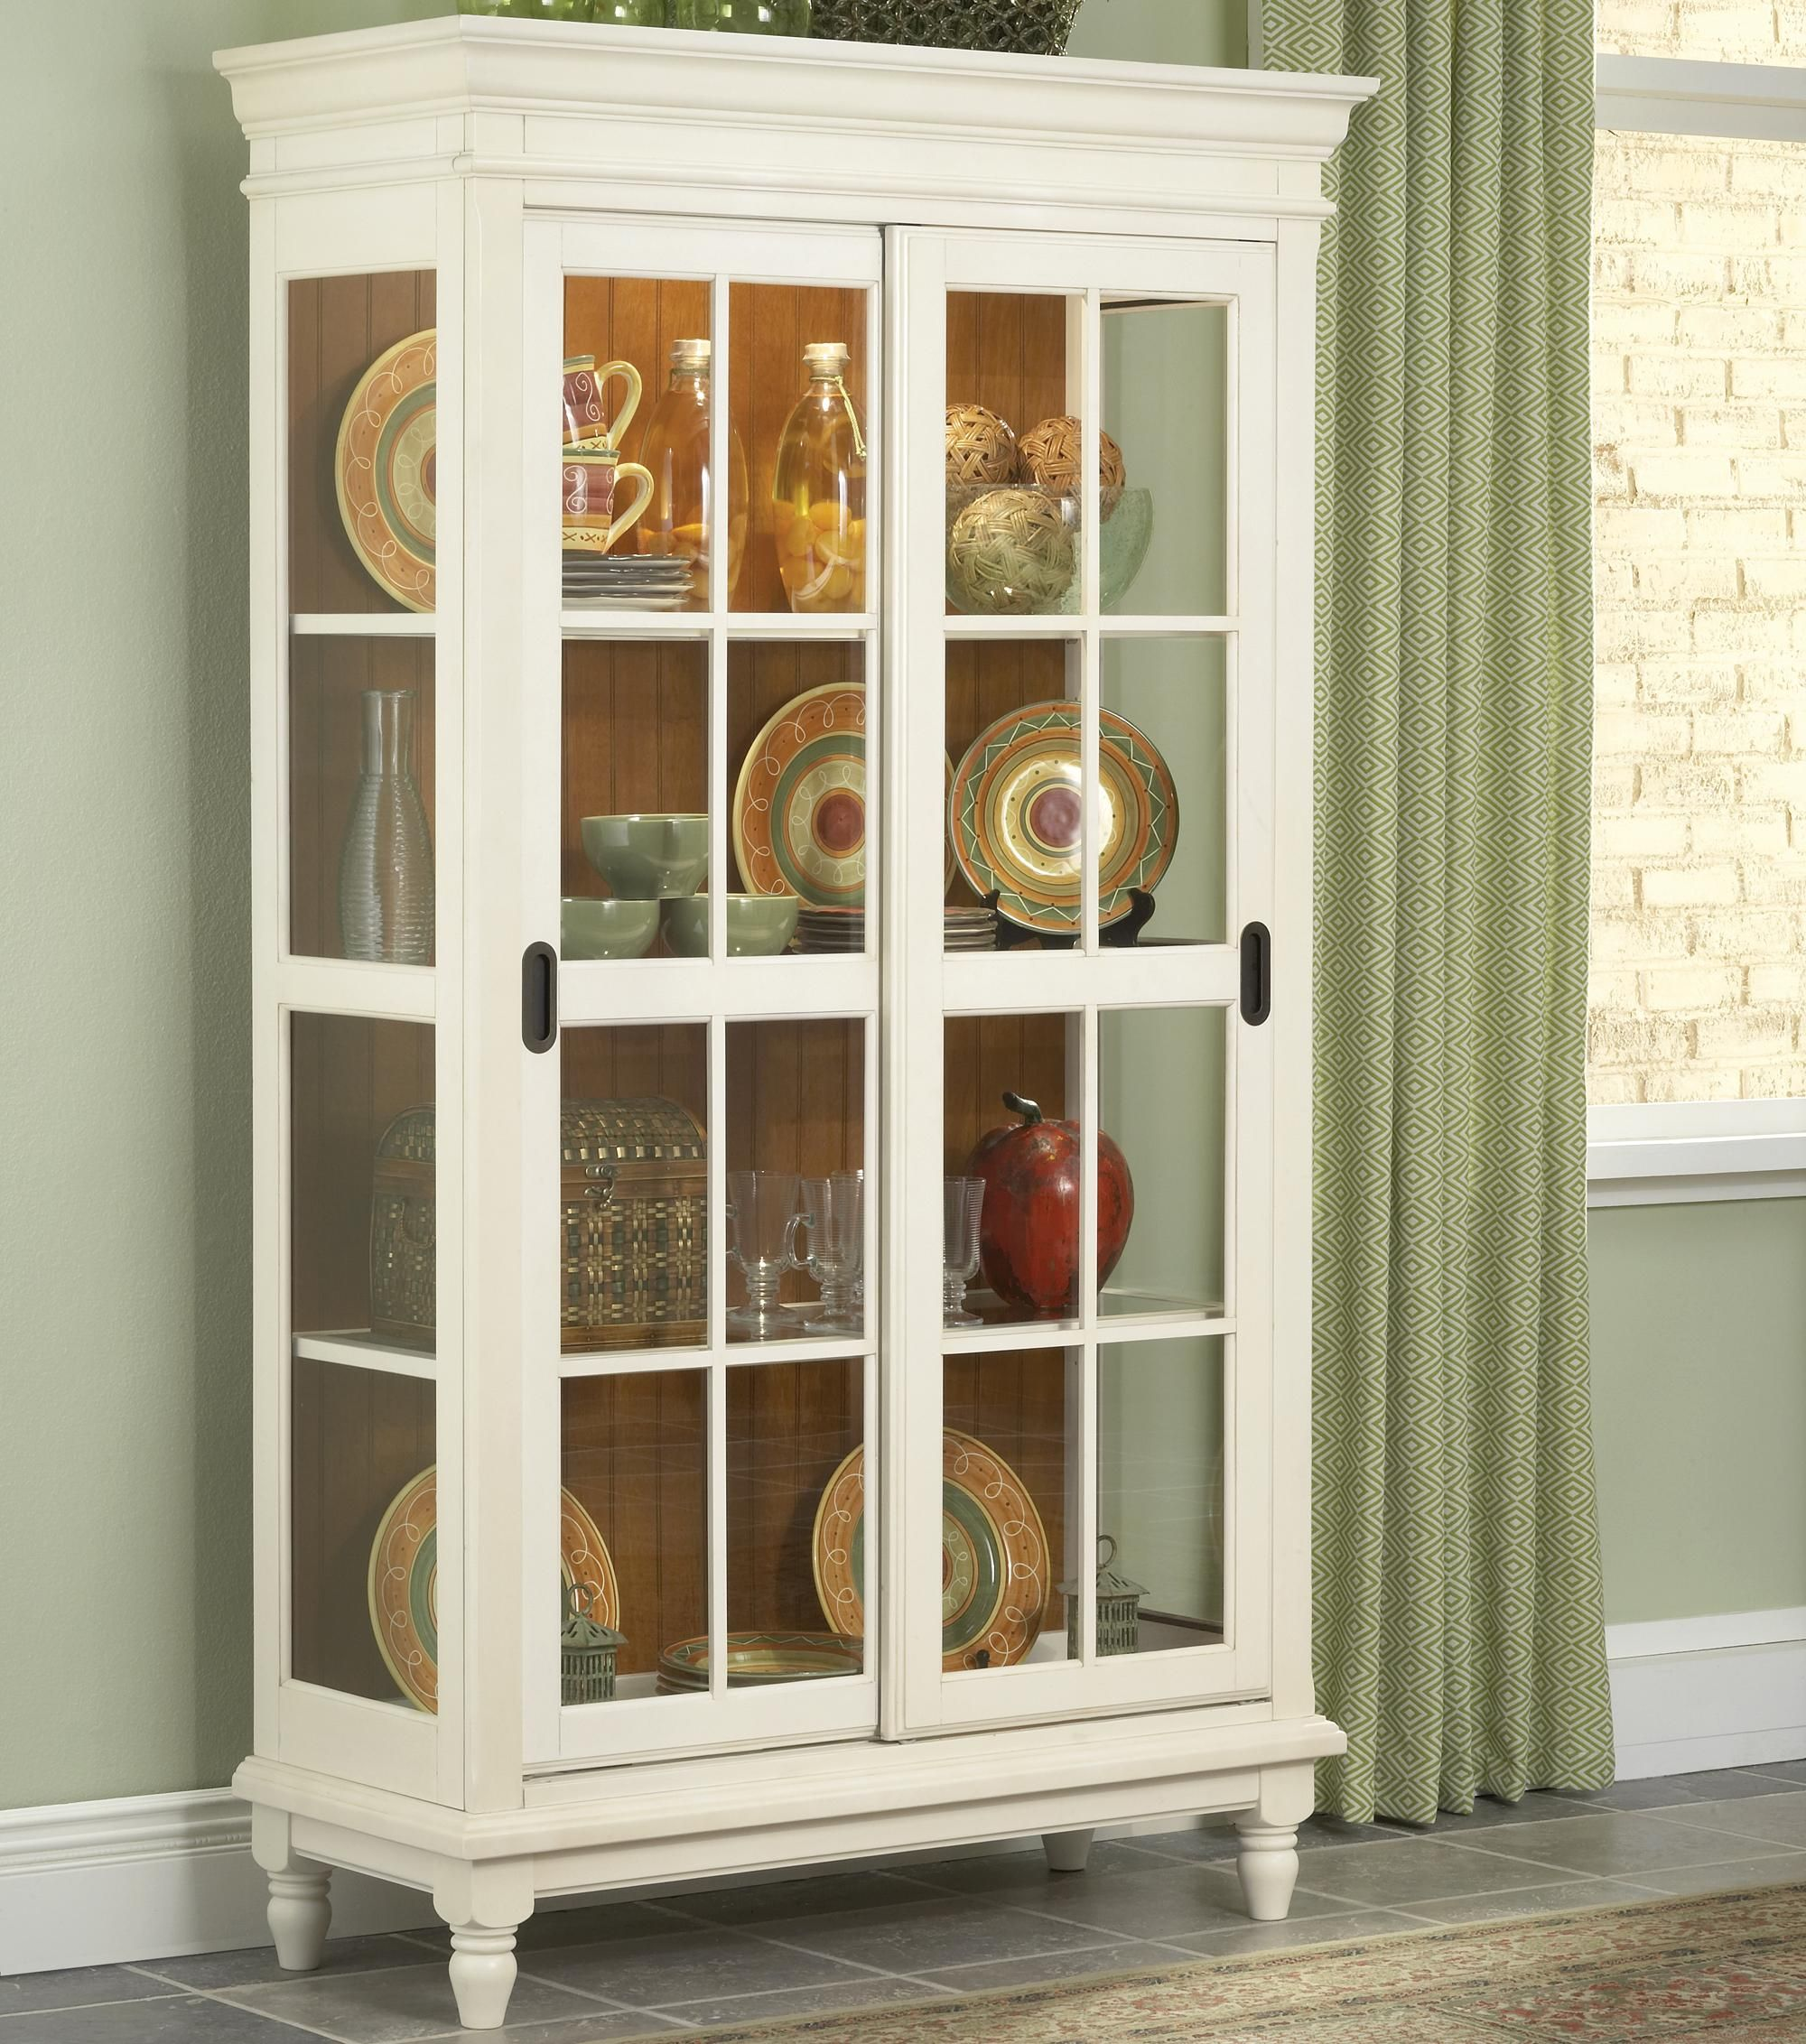 Dining Room Pieces Curio Cabinet With Crown Moulding, Turned Feet, And  Sliding Glass Doors